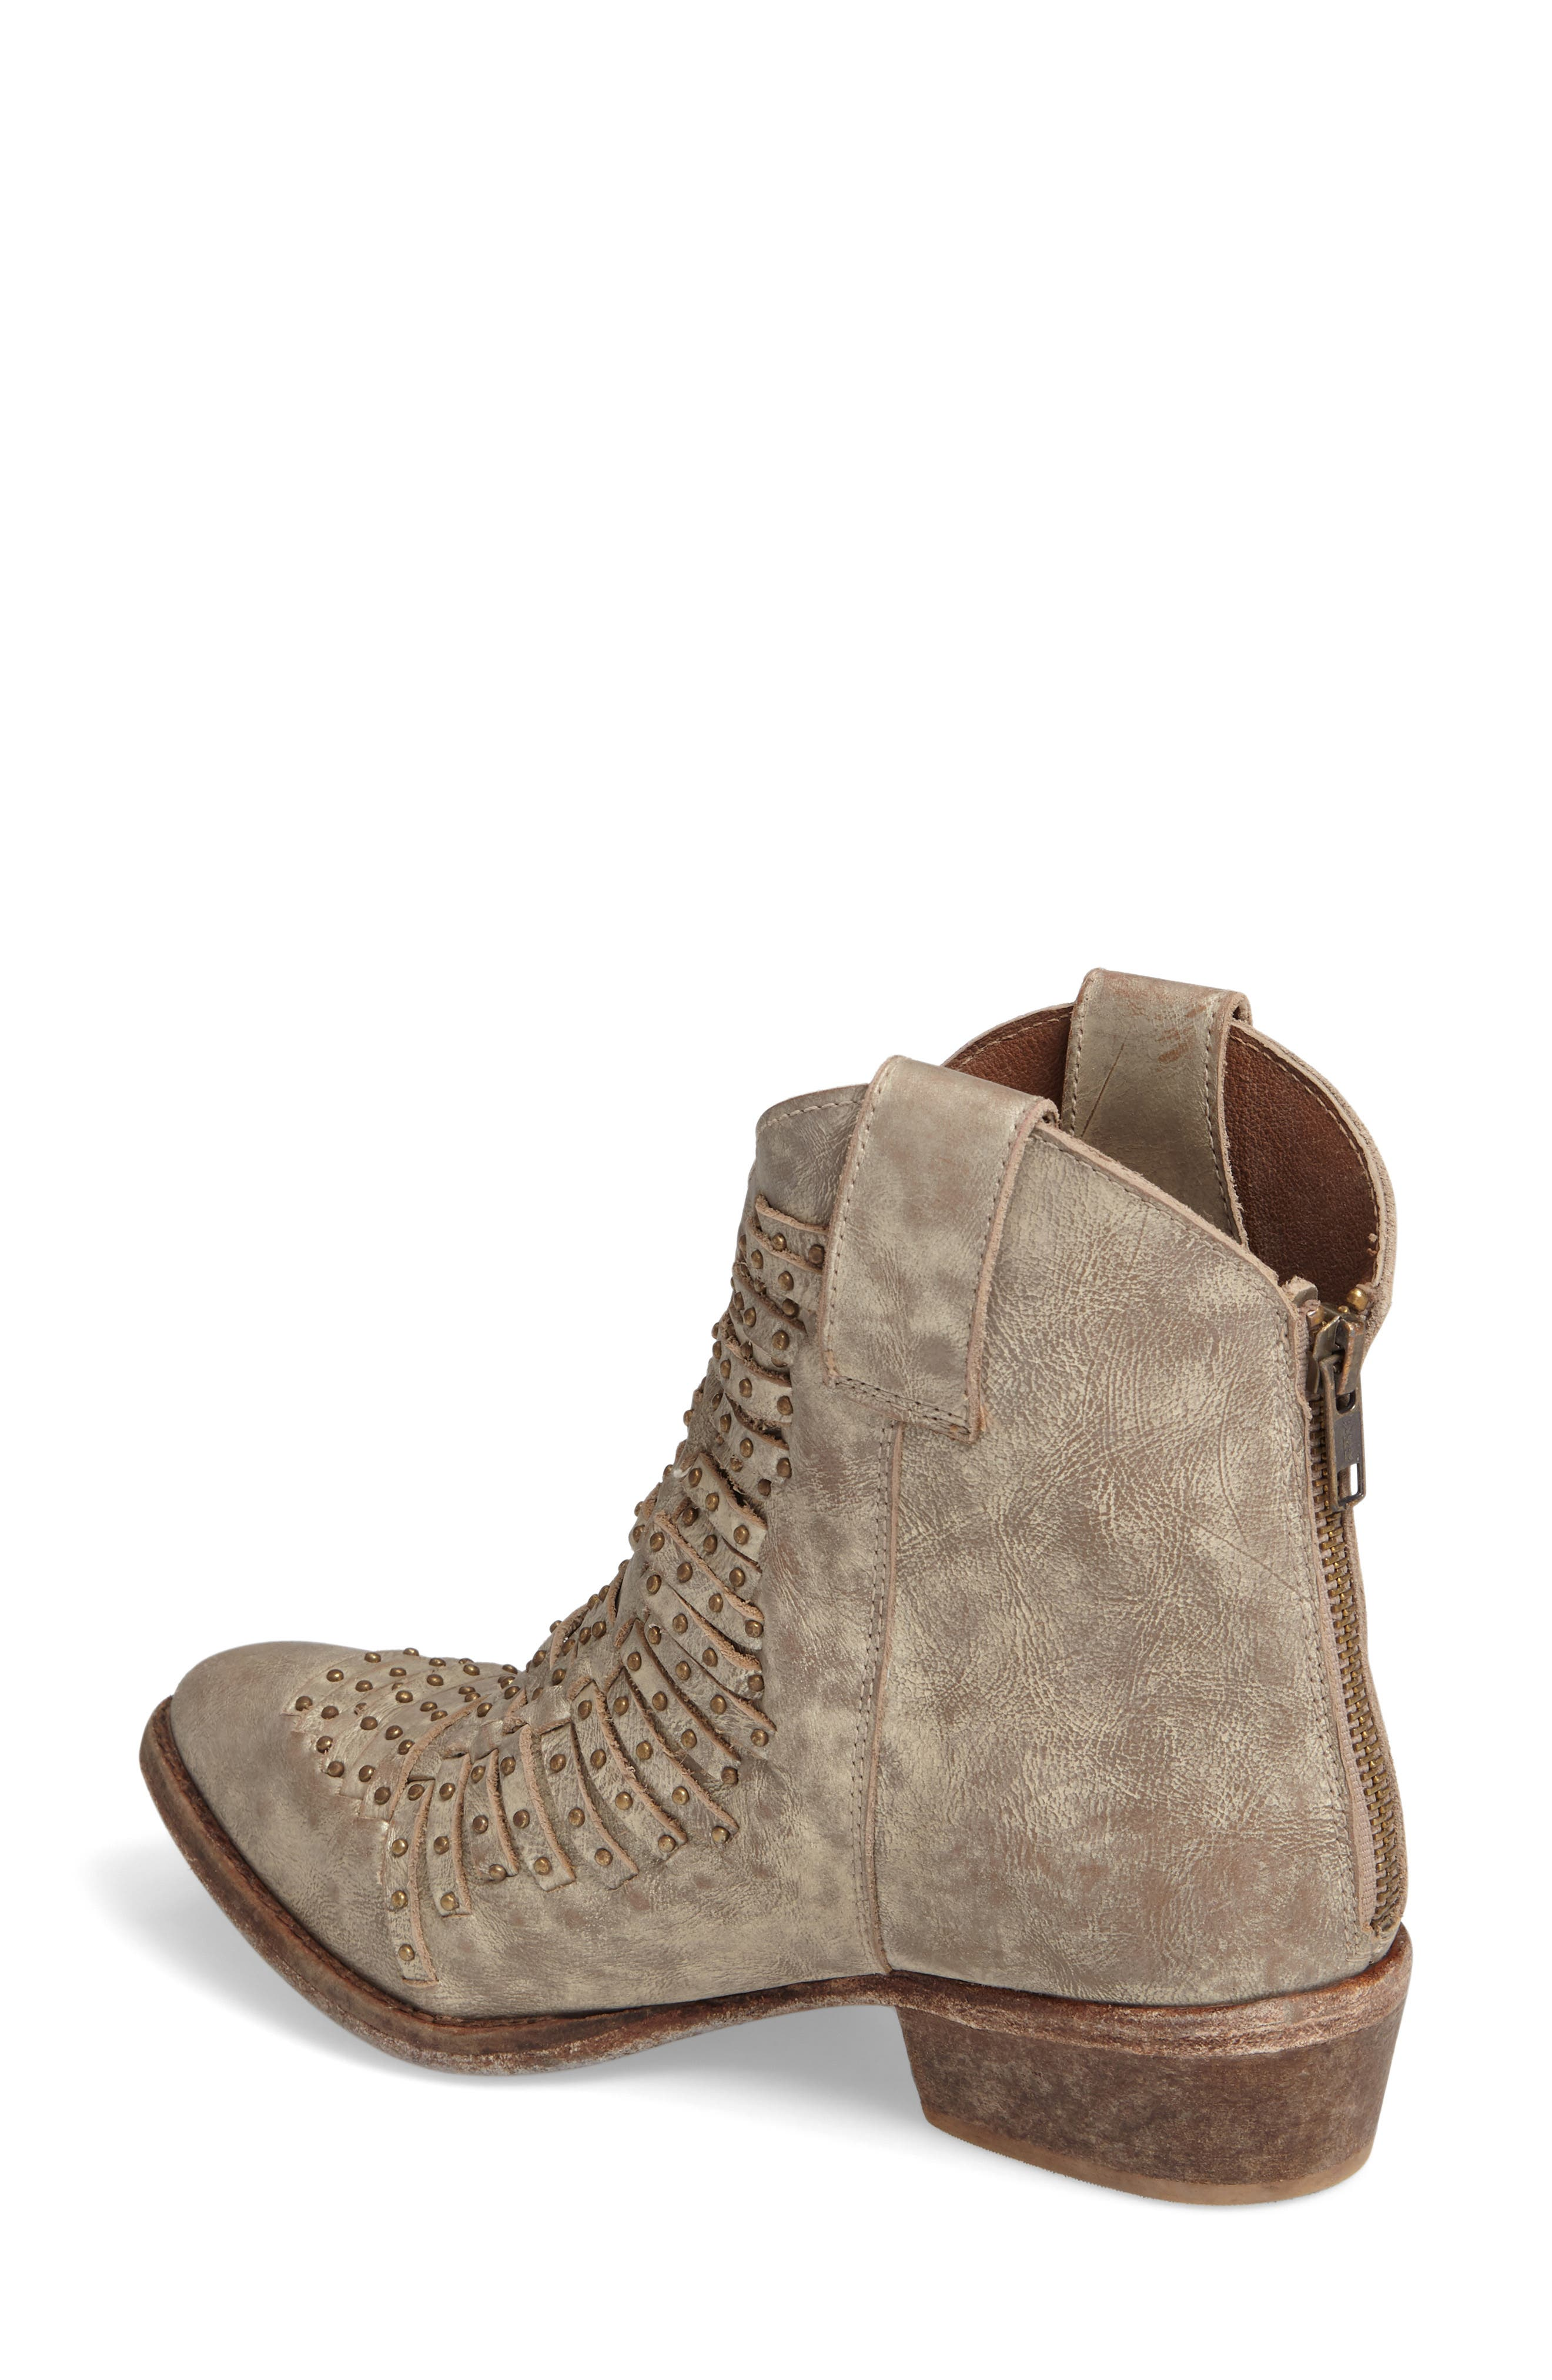 Foe Studded Bootie,                             Alternate thumbnail 2, color,                             712